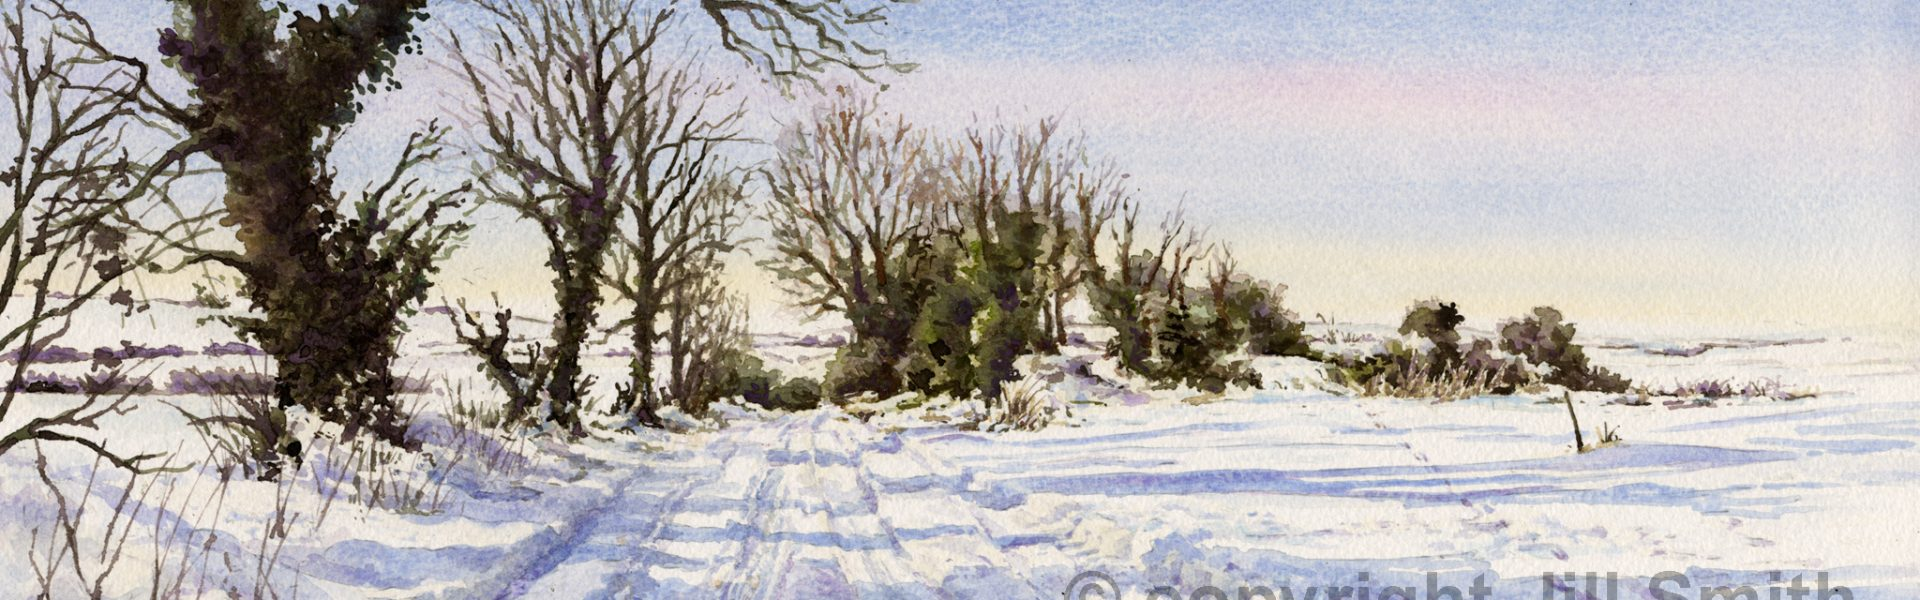 Ridgeway Under Snow SOLD